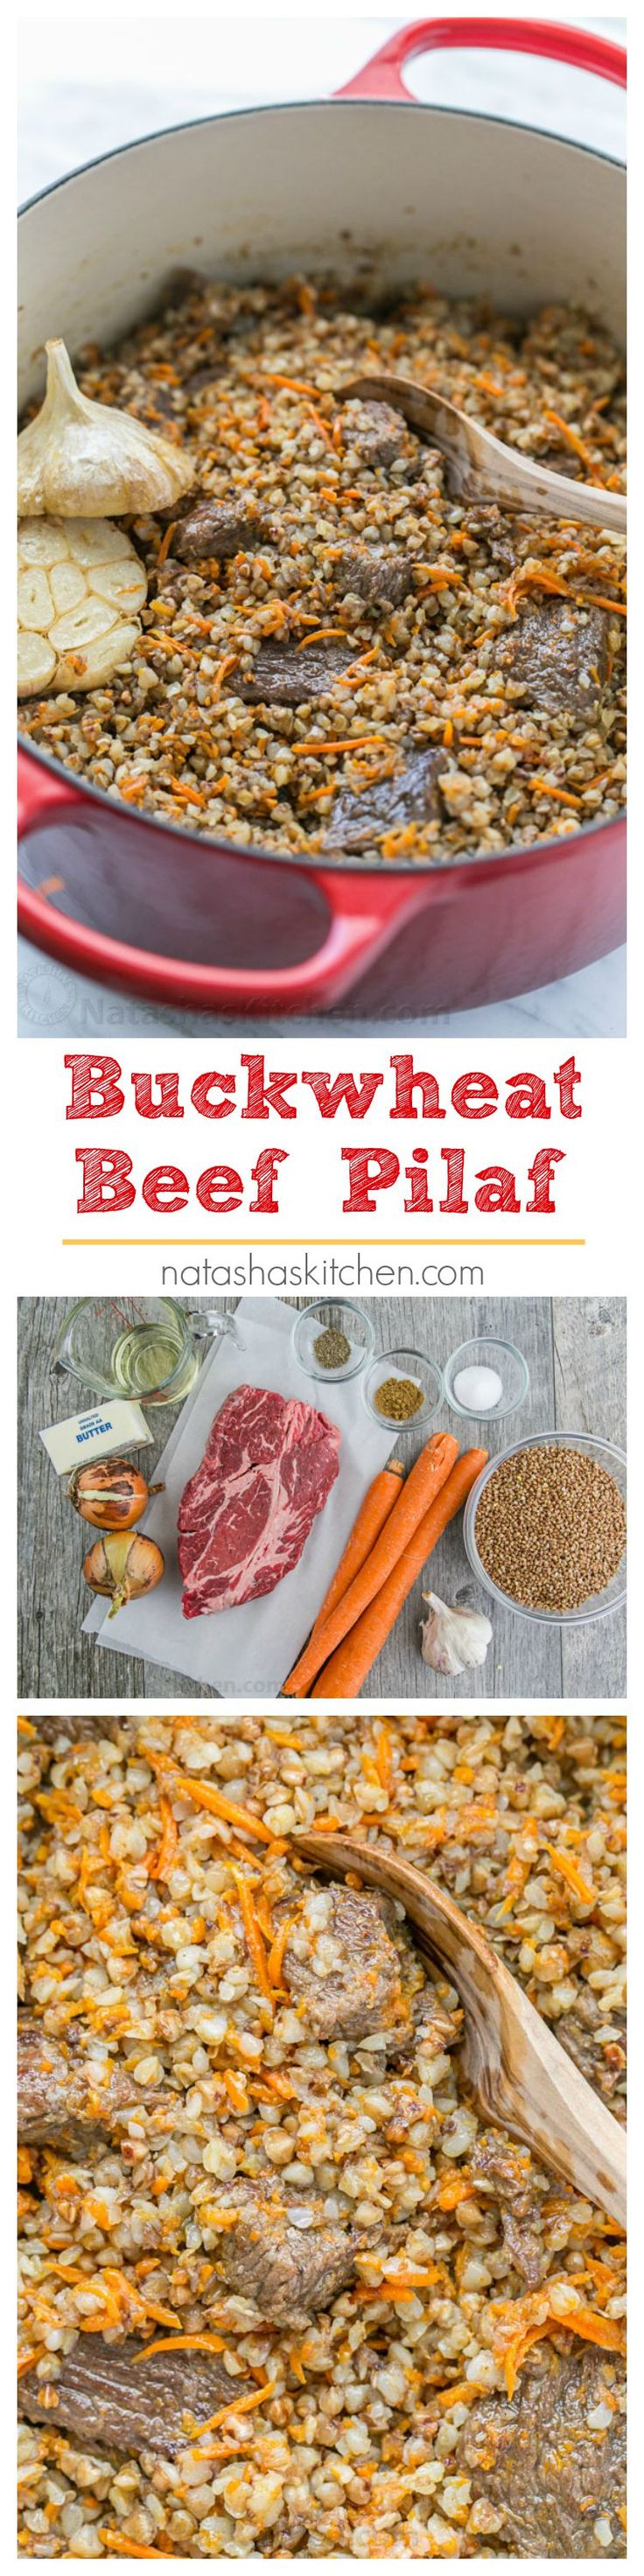 Buckwheat is a total superfood. I love this buckwheat recipe the most! Buckwheat Pilaf with fall-apart tender beef - simple and excellent dish. You'll be running back for refills! | natashaskitchen.com